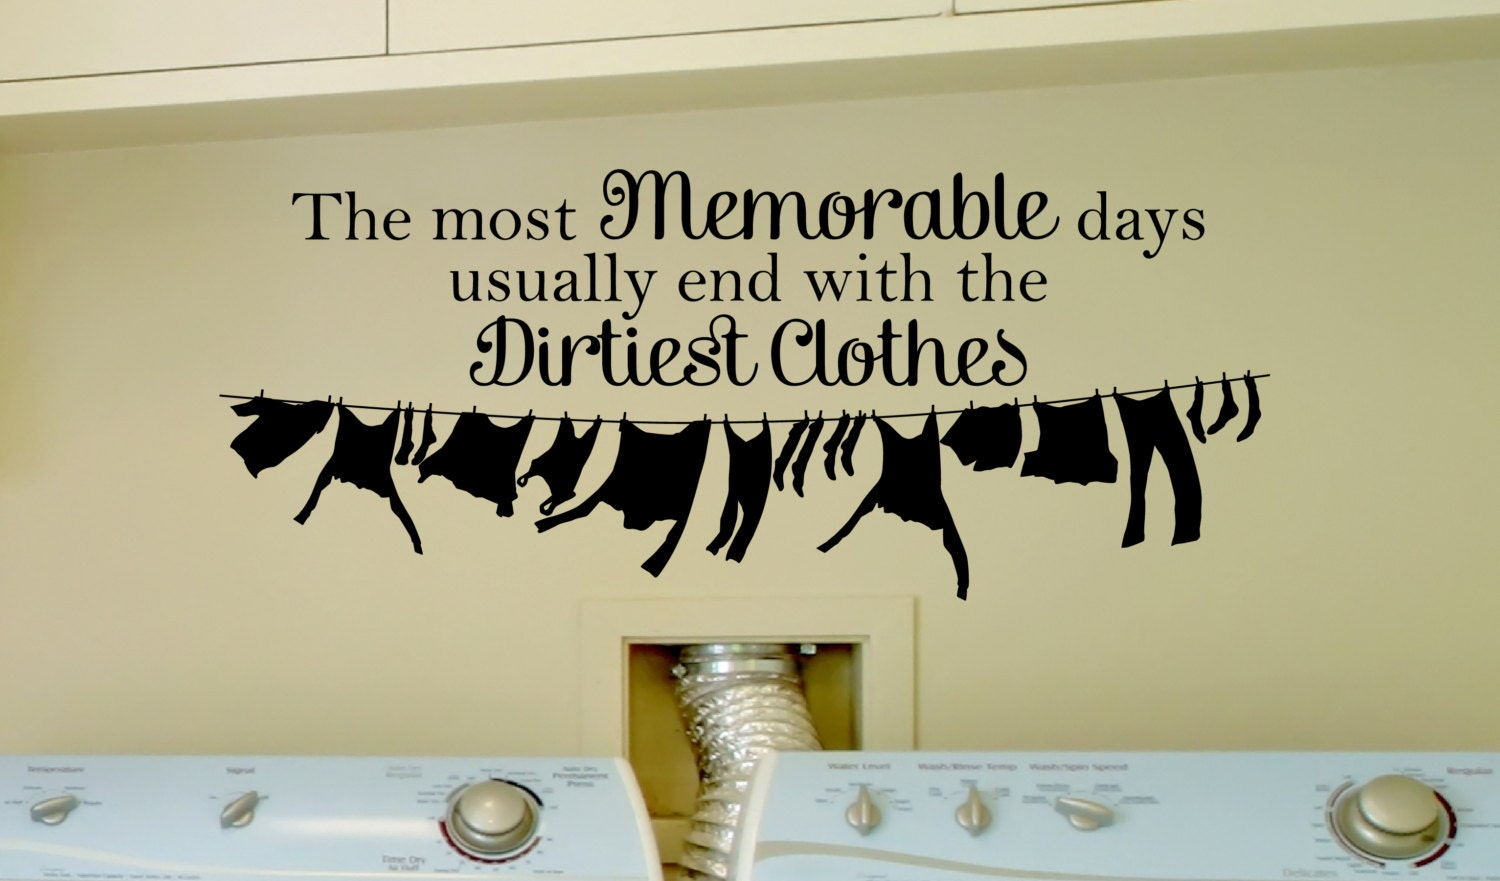 Laundry Room Wall Decor Stickers Pleasing The Most Memorable Days Laundry Room Decal Laundry Room Inspiration Design